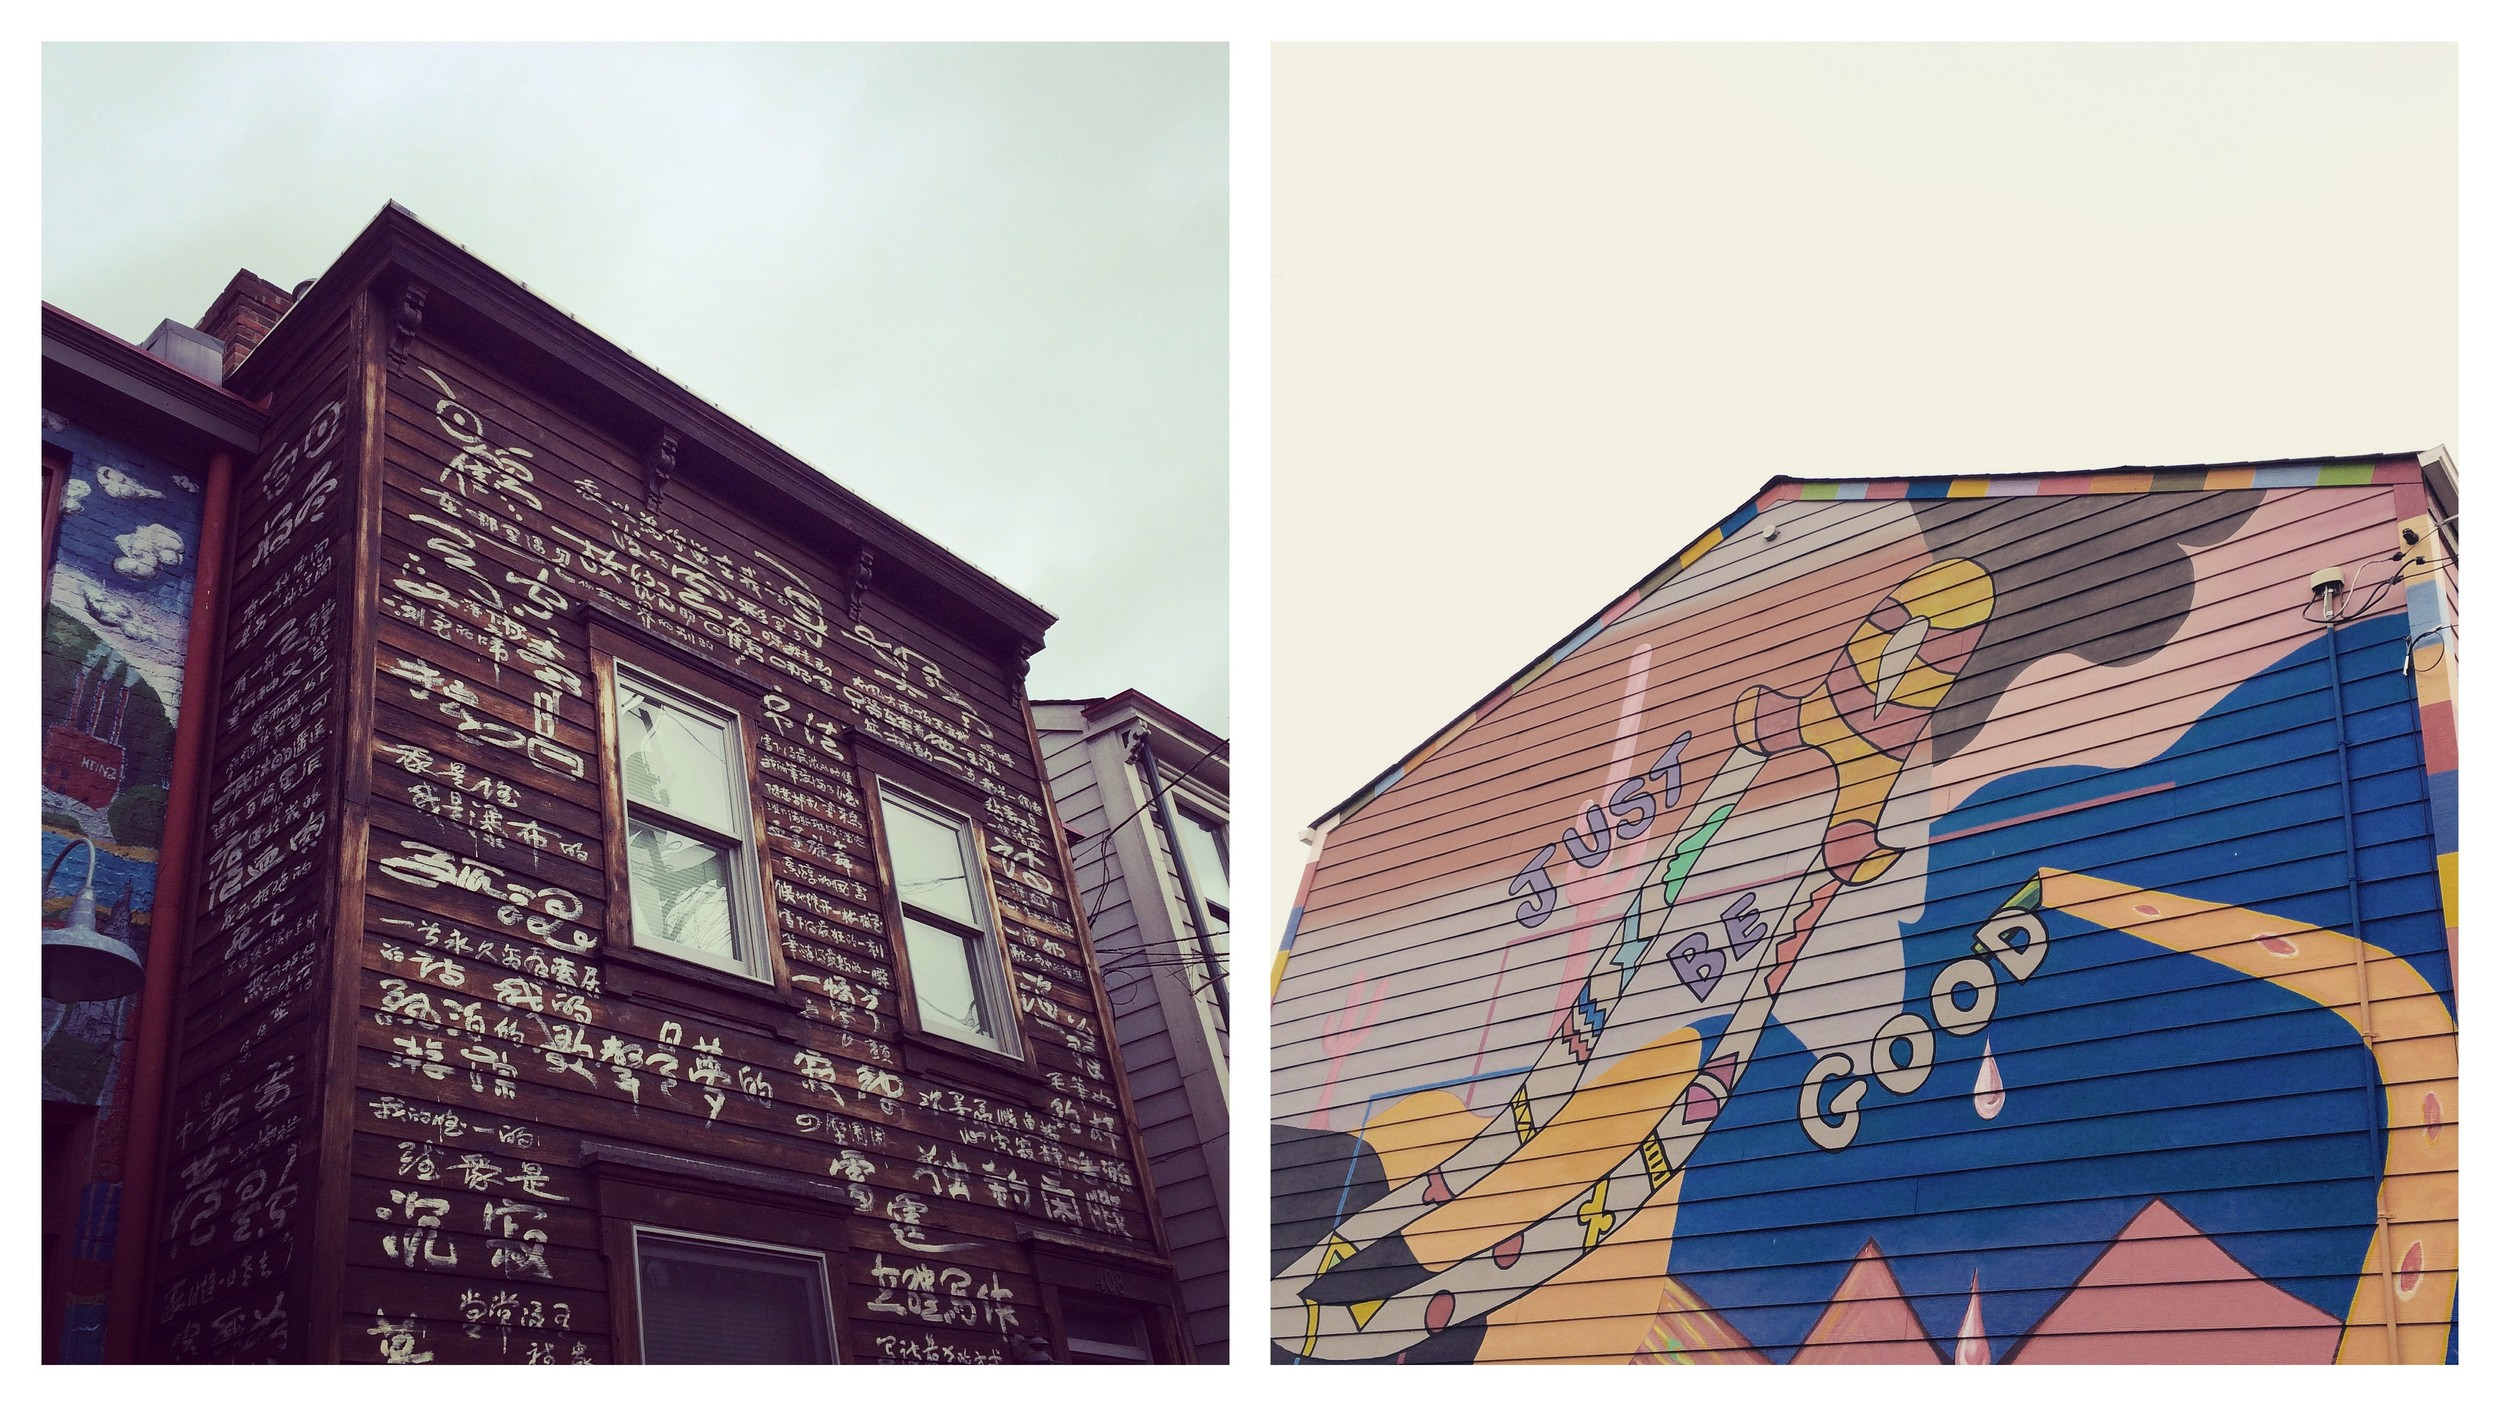 City of Asylum houses, Sampsonia Way, Pittsburgh. L: House Poem, Huang Xiang, R: Jazz House.